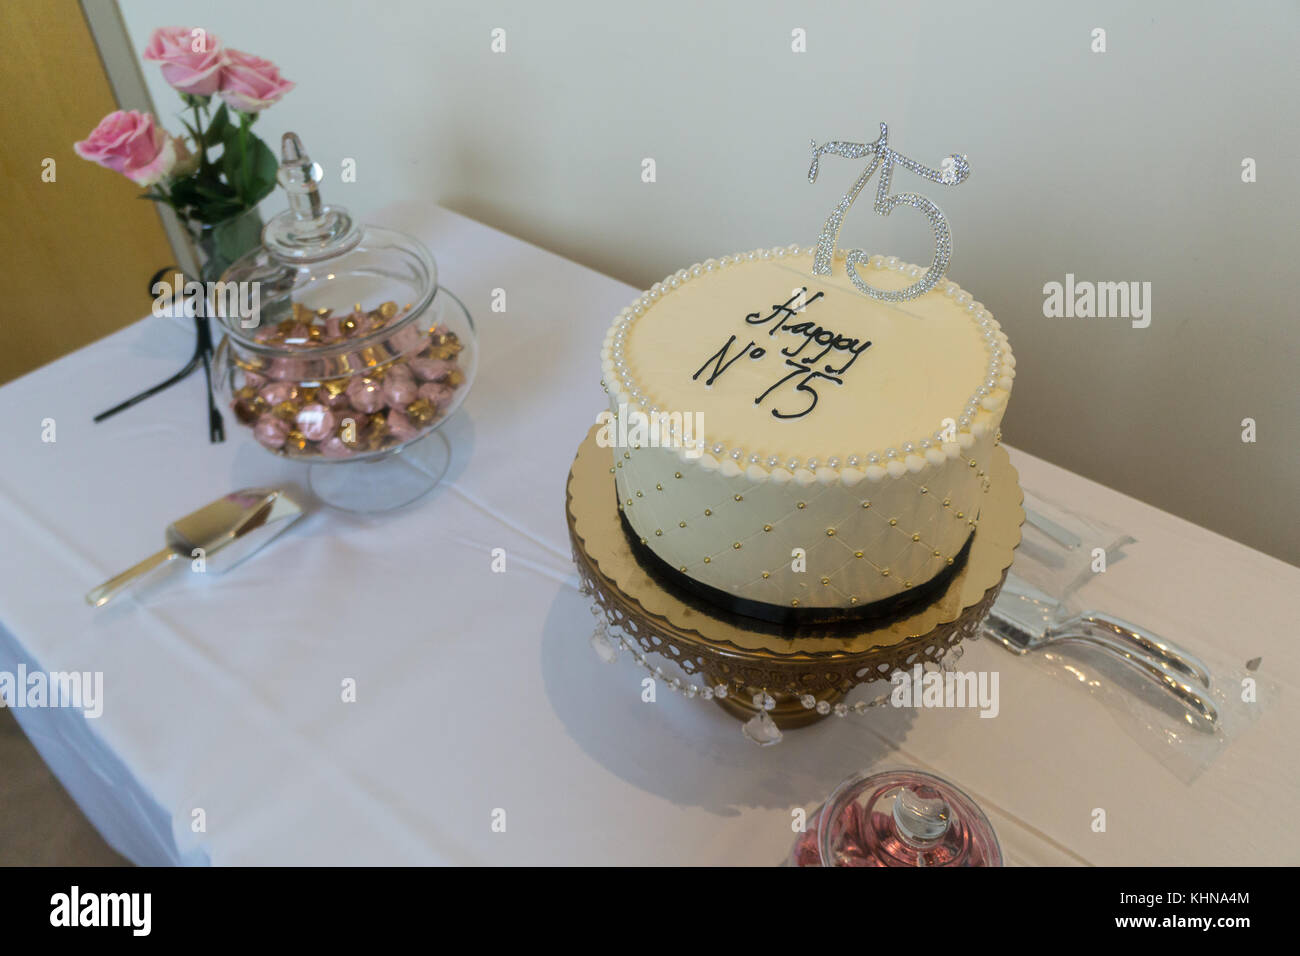 Astounding Cake Of 75Th Anniversary Or Birthday Classy Beaded With Foiled Funny Birthday Cards Online Overcheapnameinfo